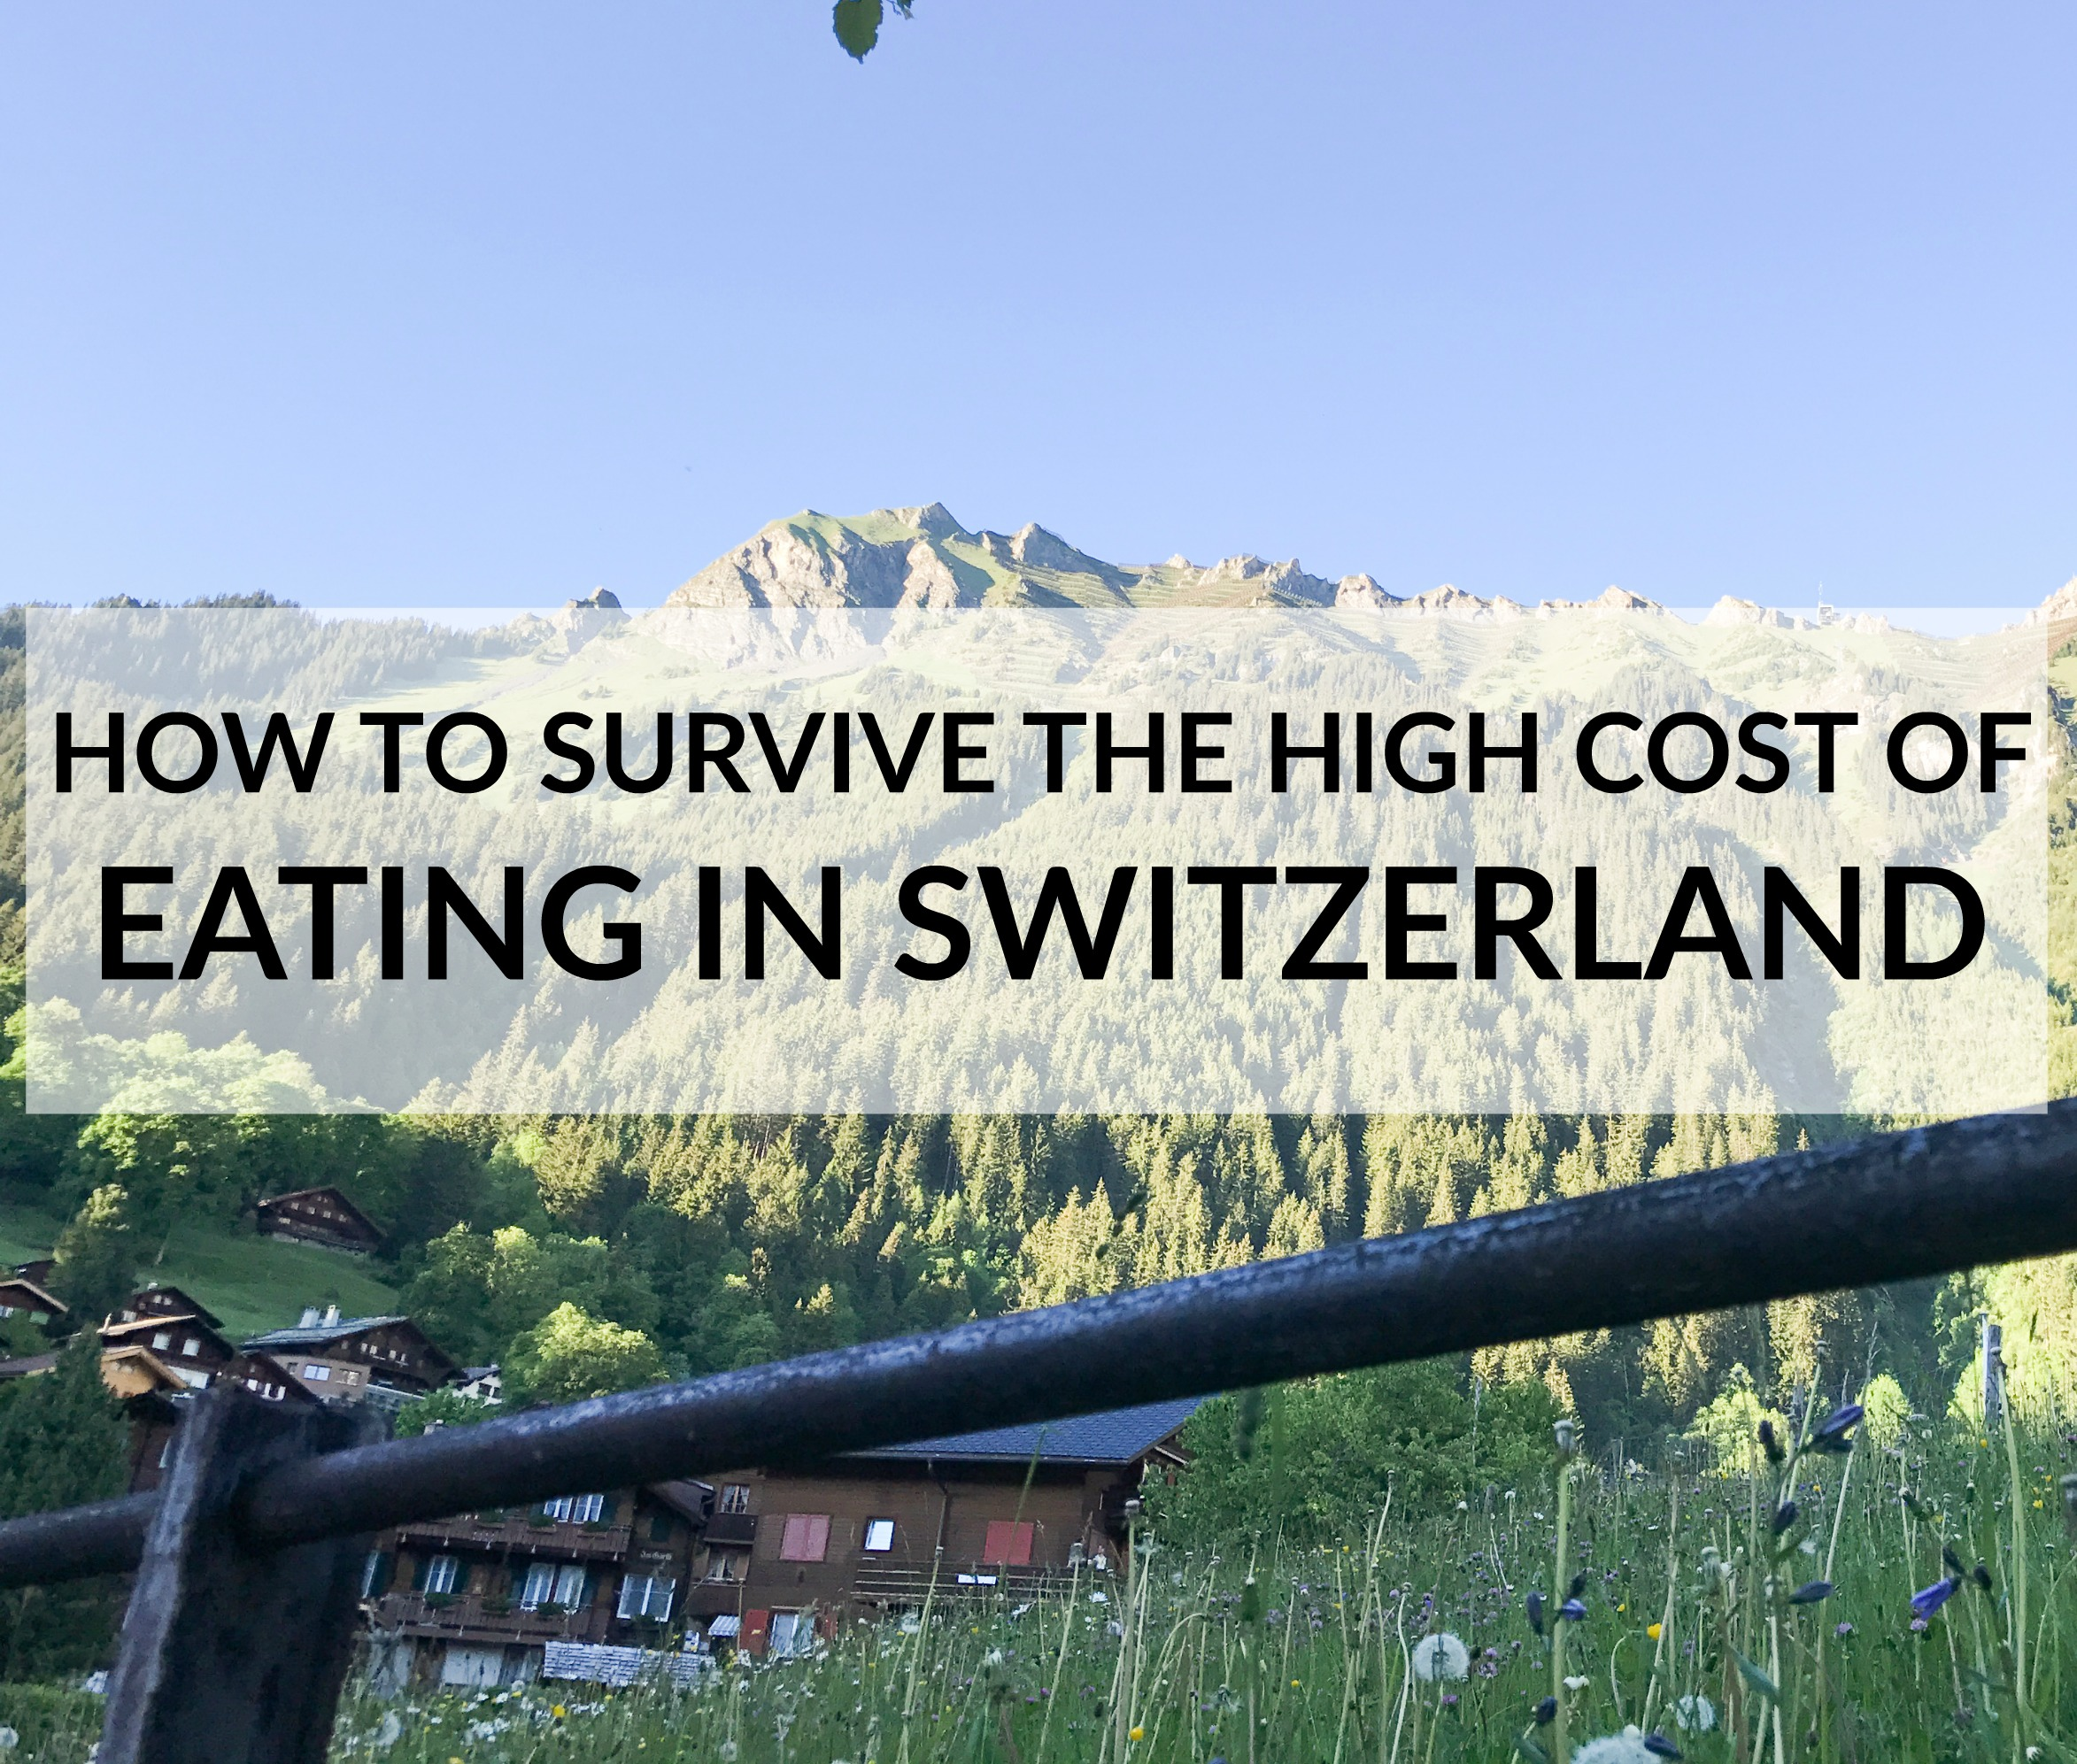 Eating in Switzerland